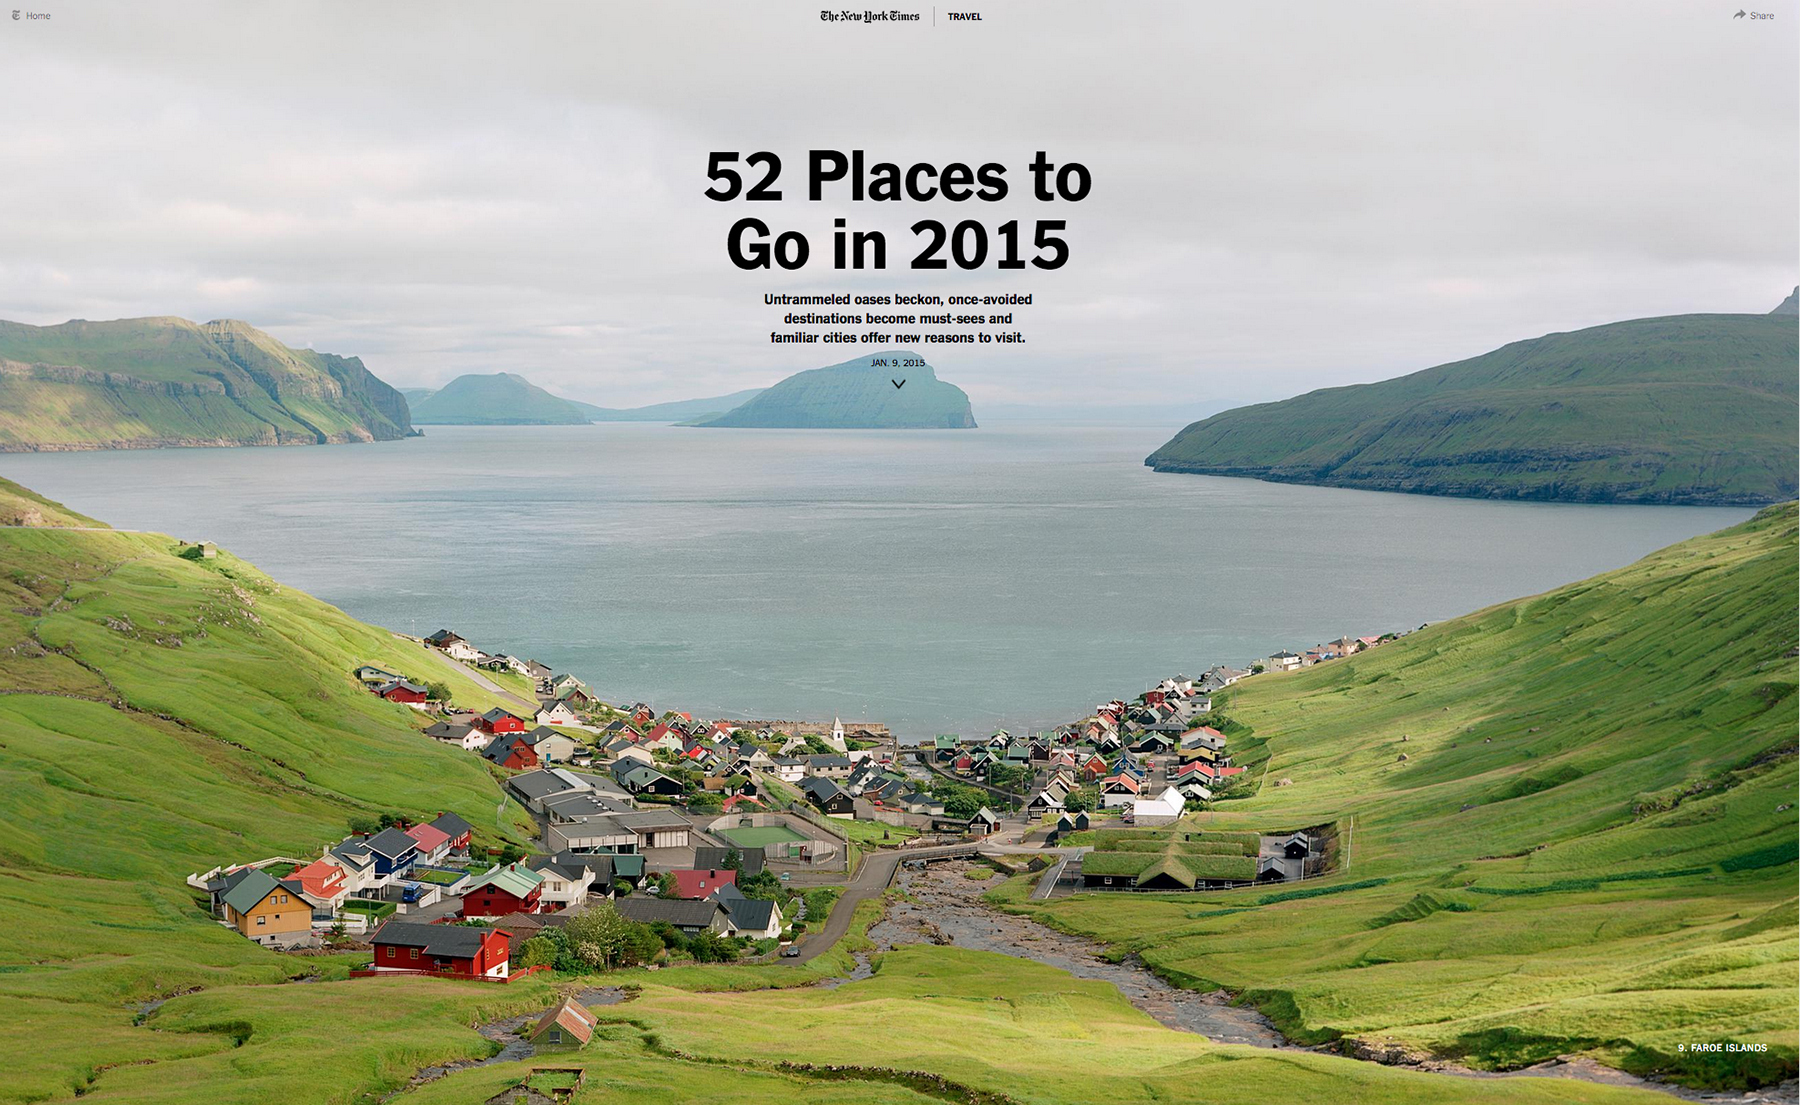 Photograph Credit Benjamin RasmussenFaroe Islands, 52 Places to go in 2015 - New York Times Travel interactive